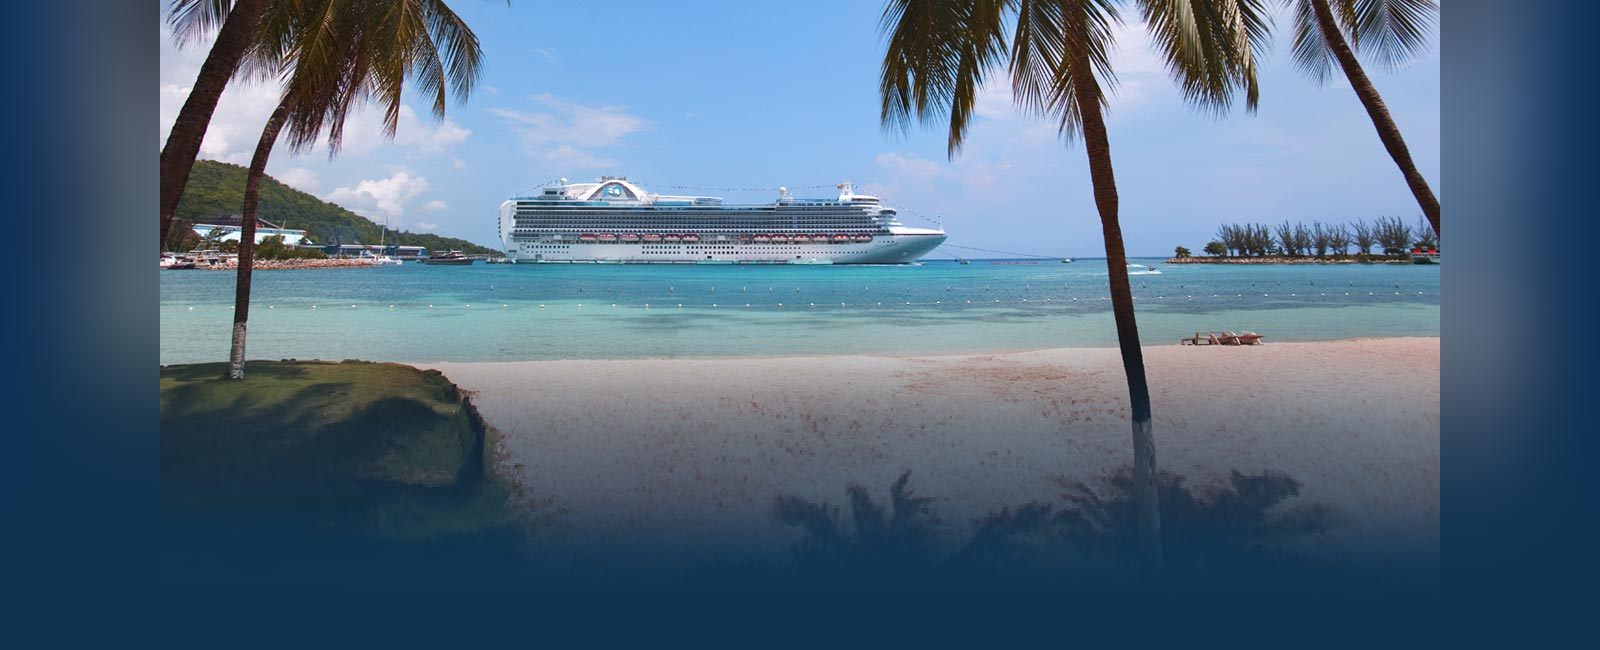 princess cruise ship docked by a Caribbean shore